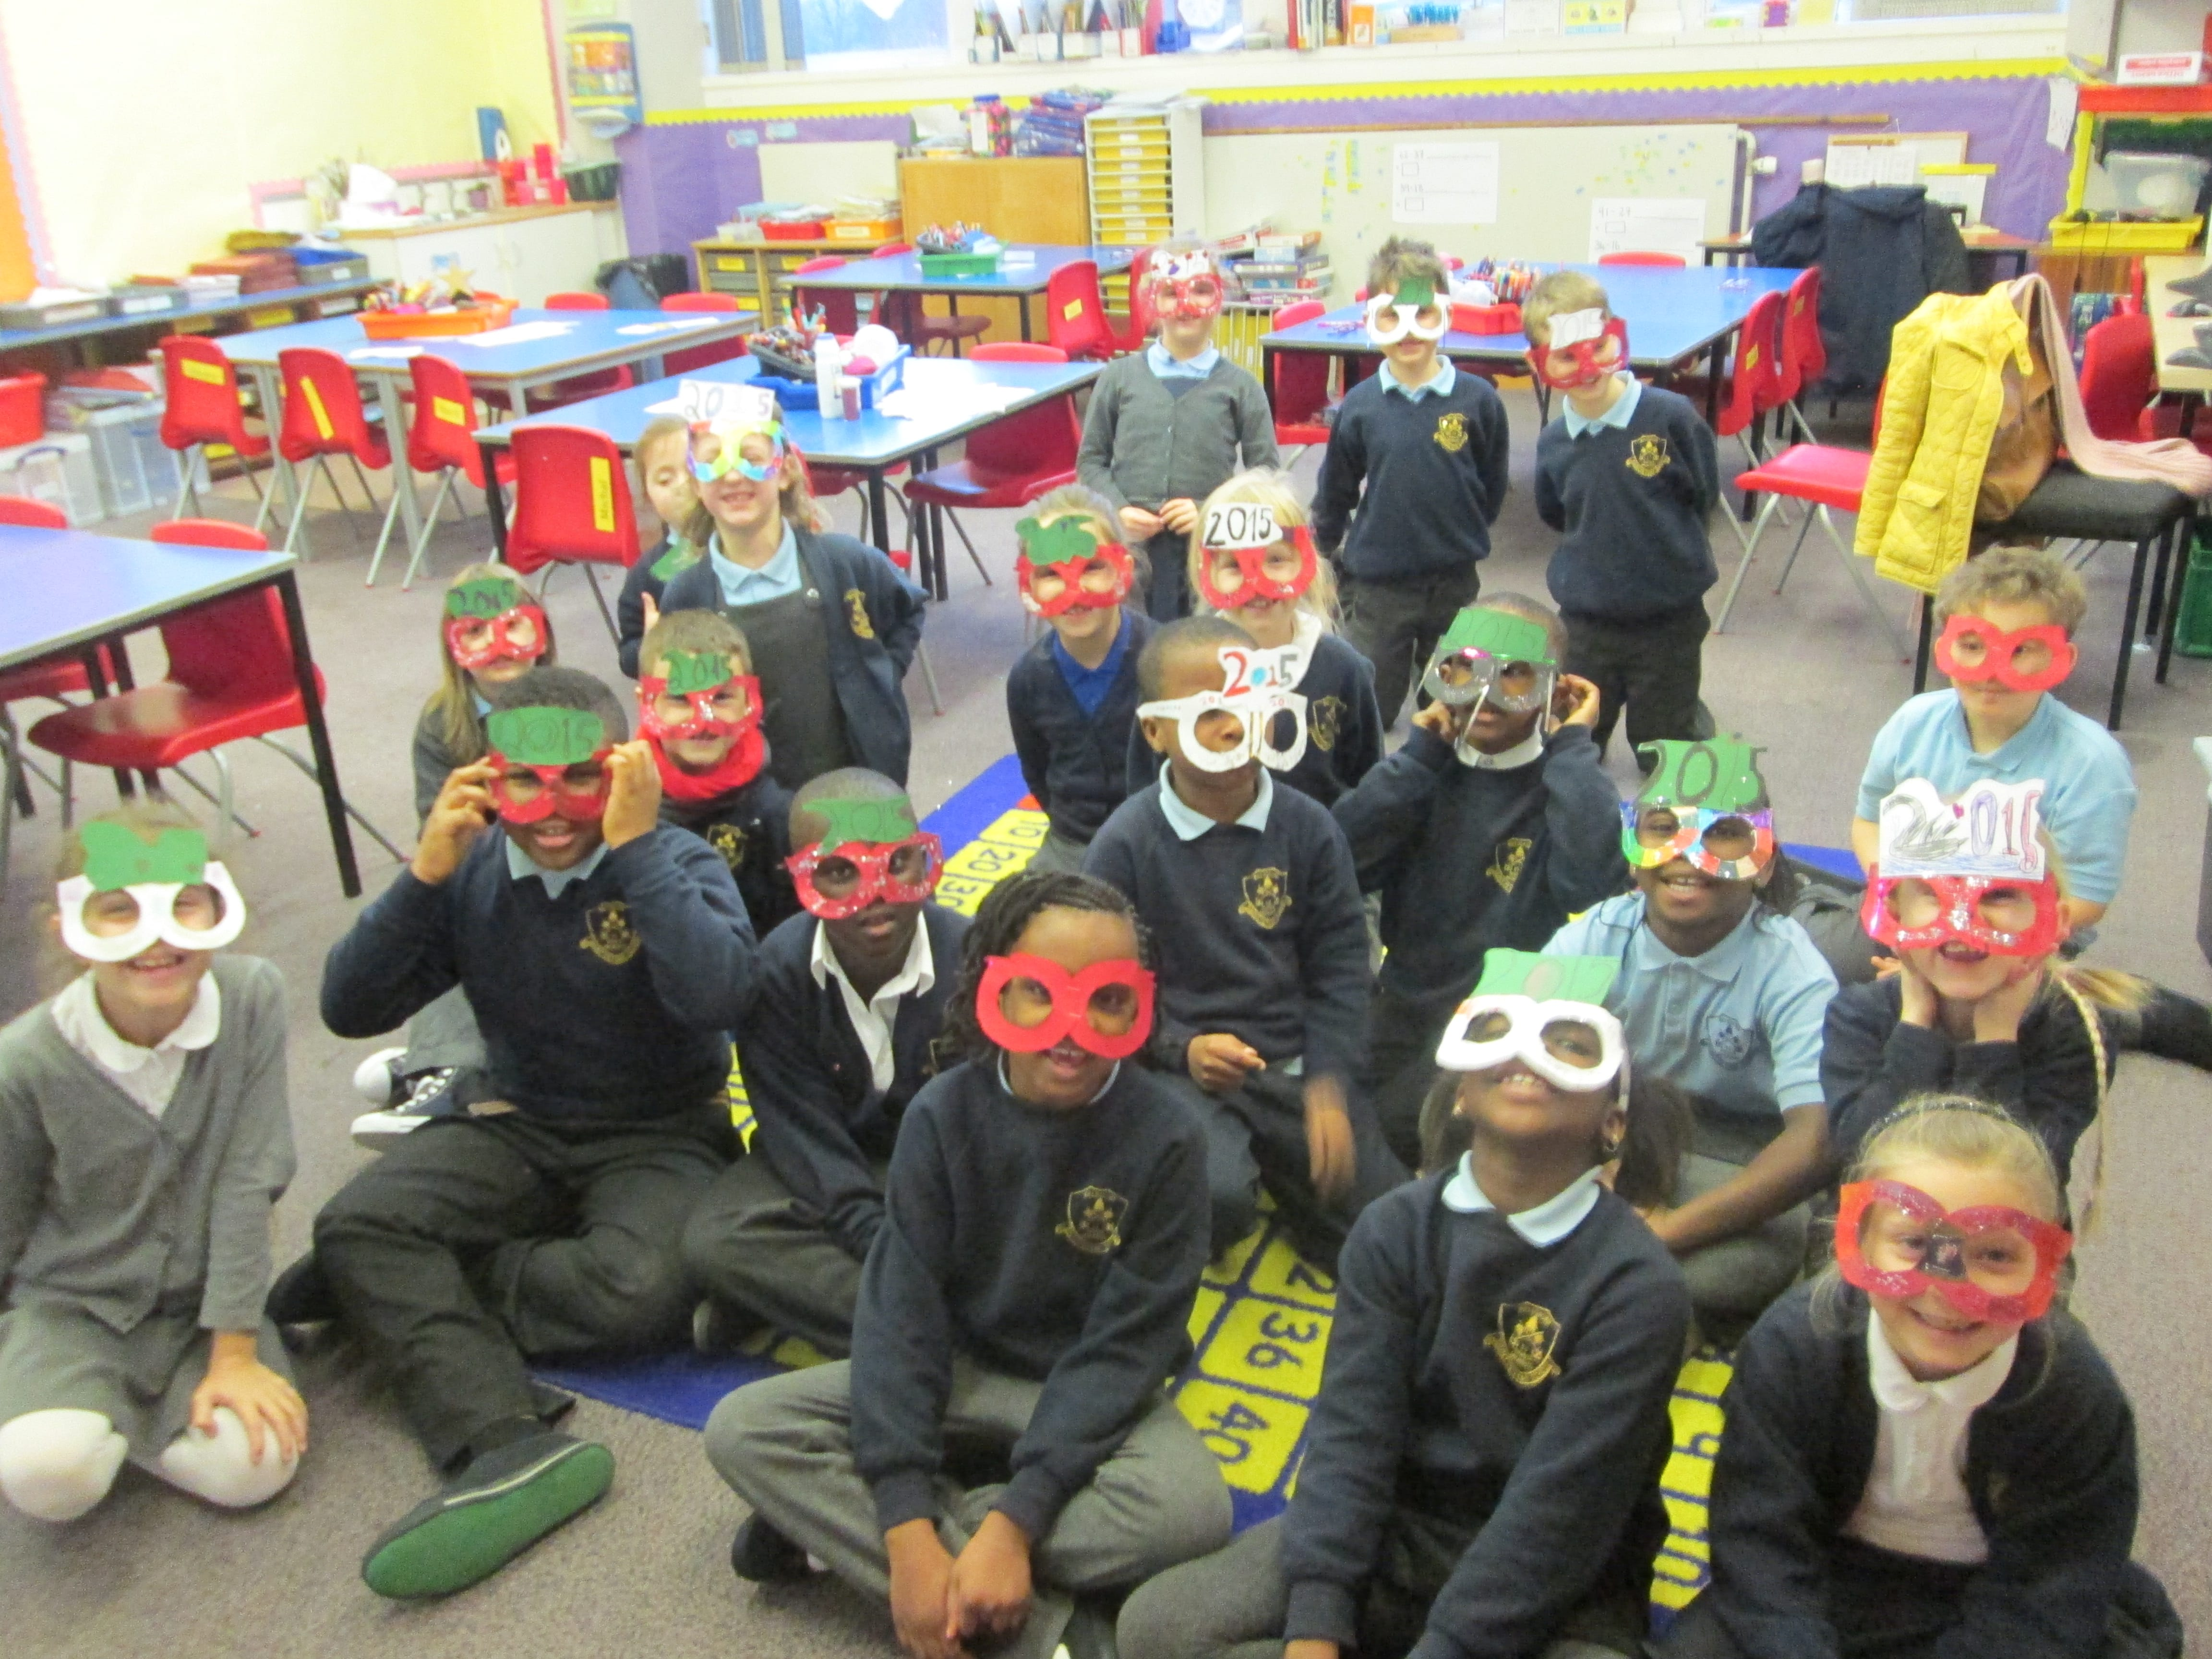 P3 are looking into the future with their special glasses